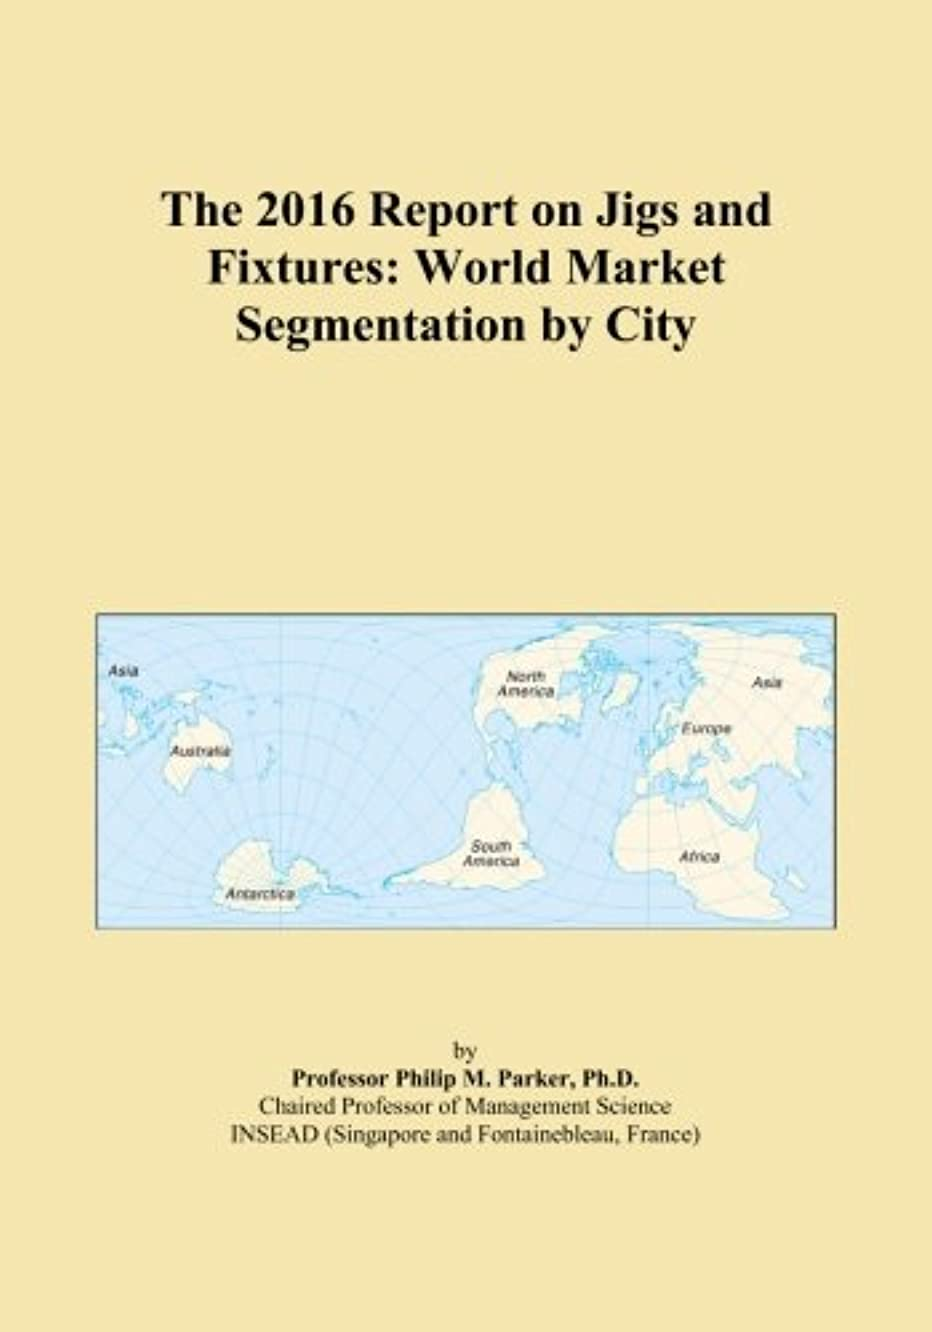 The 2016 Report on Jigs and Fixtures: World Market Segmentation by City